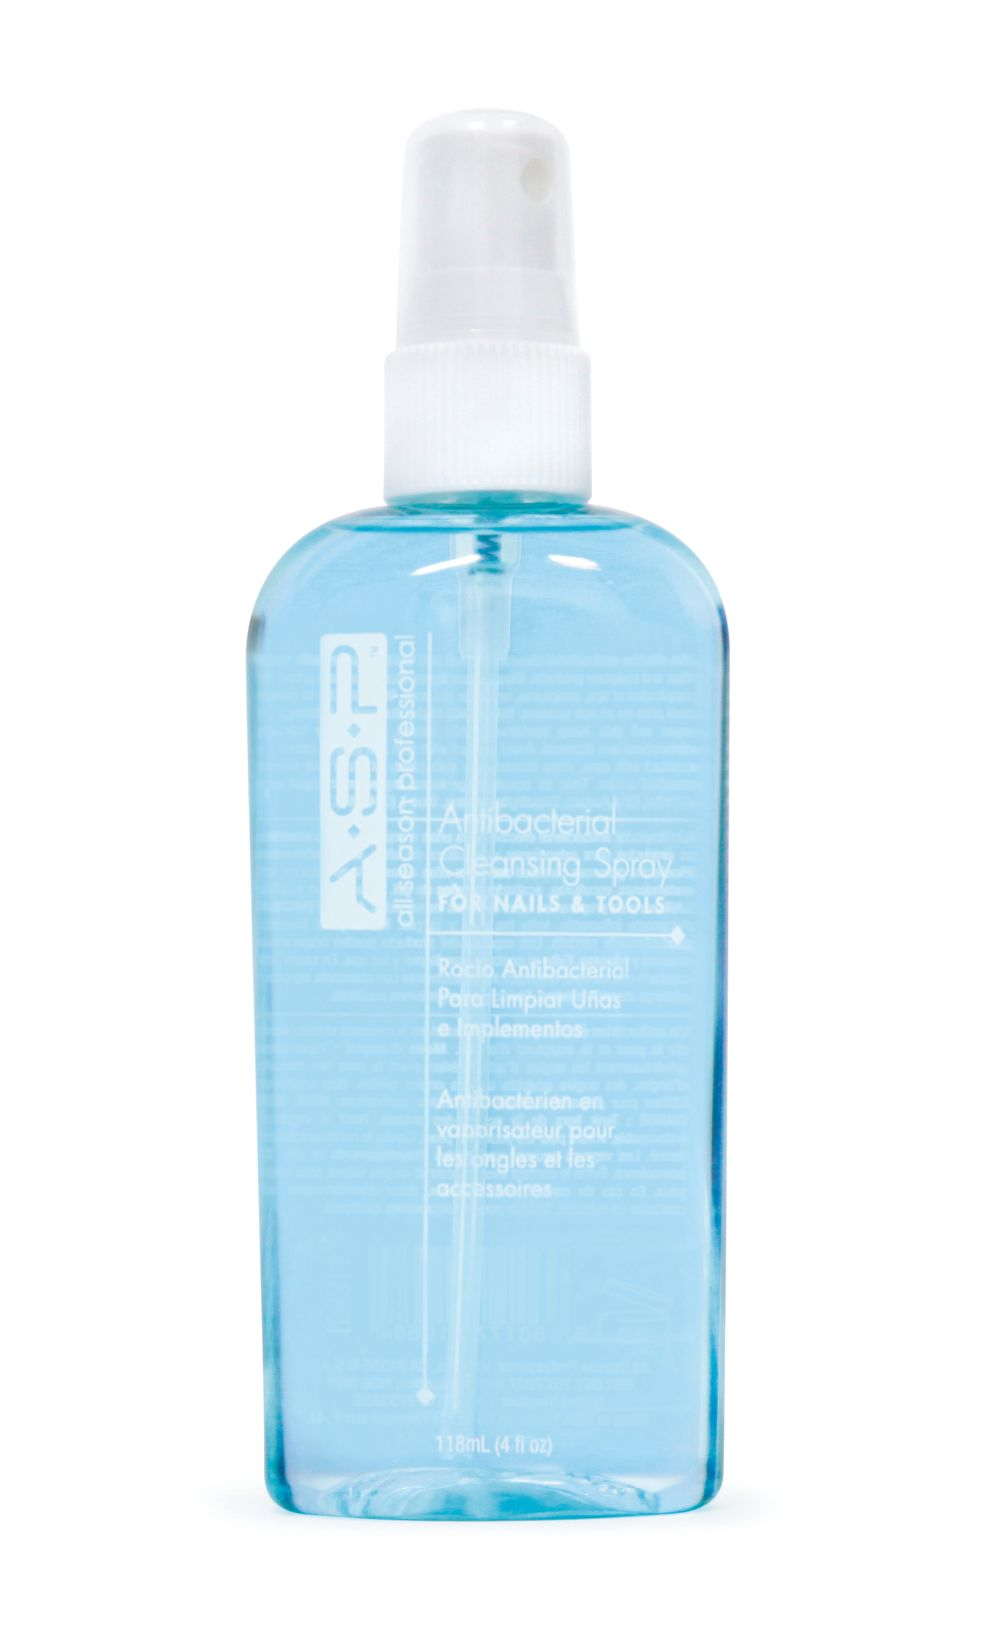 """<p><strong>ASP&rsquo;s</strong><span>&nbsp;Antibacterial Cleansing Spray is an&nbsp;</span><span>effective antiseptic to combat fungus and&nbsp;</span><span>bacteria on both implements and nails.&nbsp;</span><span>It cleans and prepares the natural nail for&nbsp;</span><span>services without rinsing and disinfects&nbsp;</span><span>workstation tools. The crisp, blue, quickdrying&nbsp;</span><span>formula contains chemicals that&nbsp;</span><span>prevent cross-contamination.</span><br /><a href=""""http://www.aspnail.com/"""">www.aspnail.com</a></p>"""